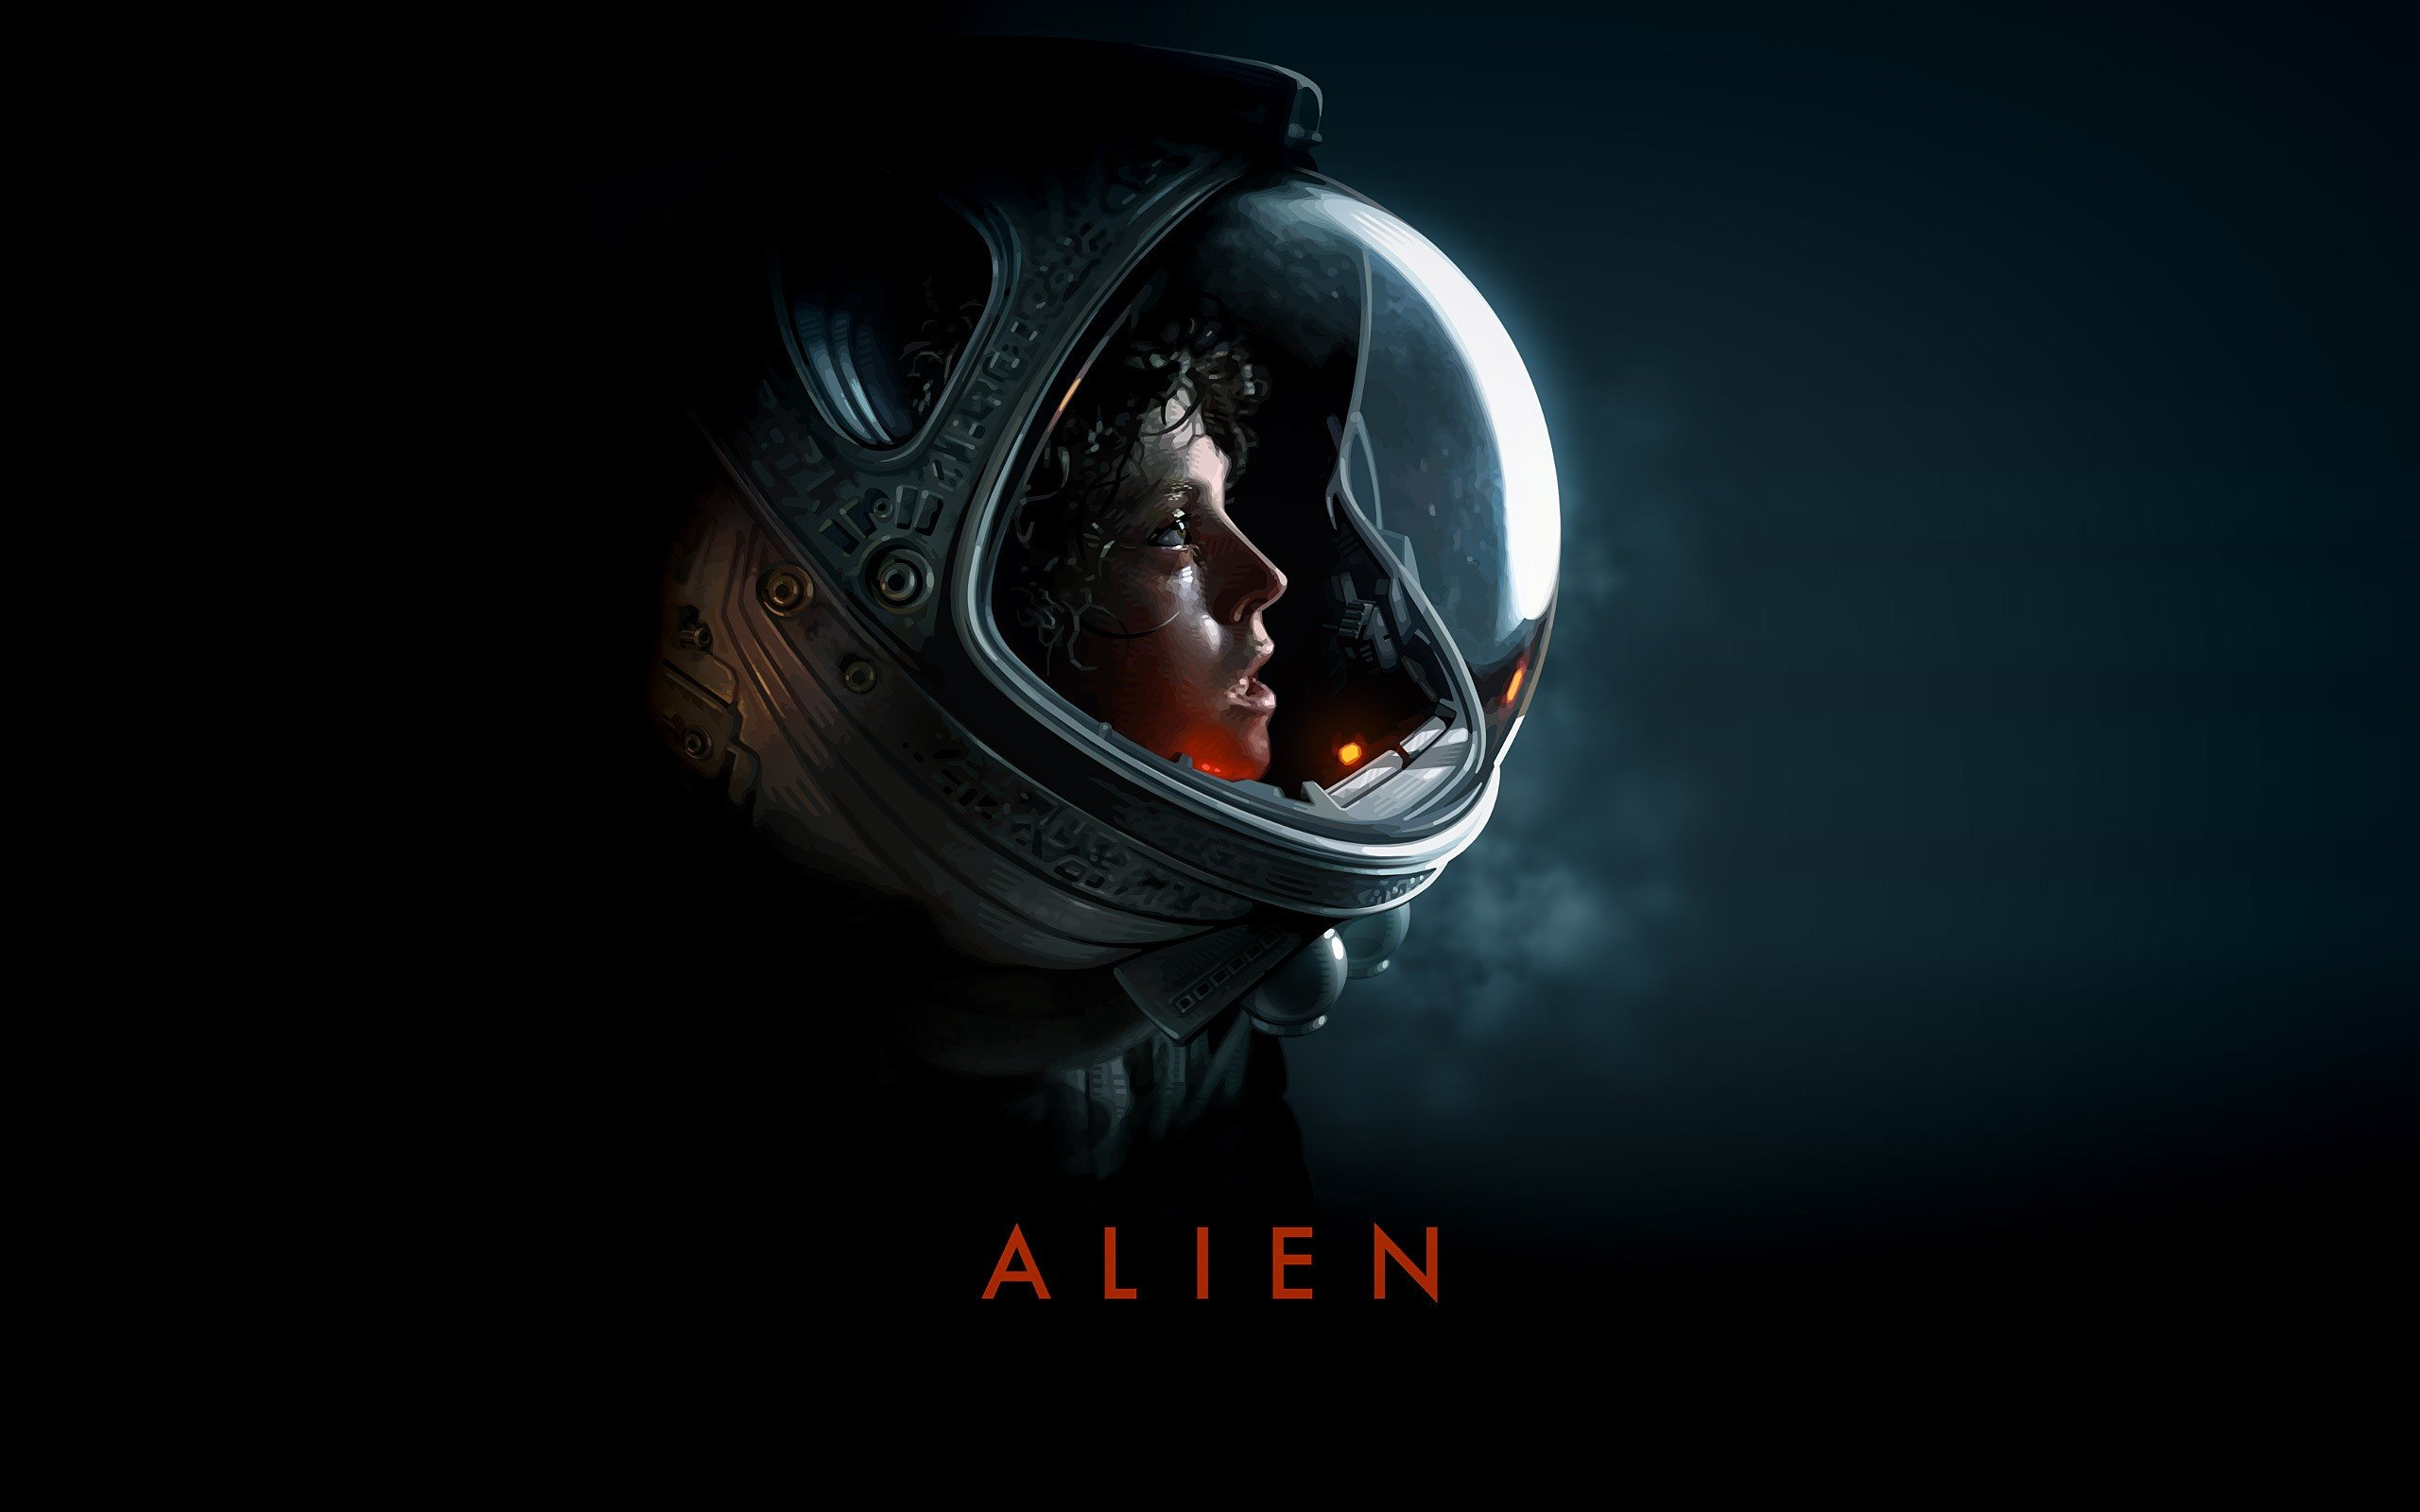 Aliens Hd Wallpapers Desktop And Mobile Images Photos